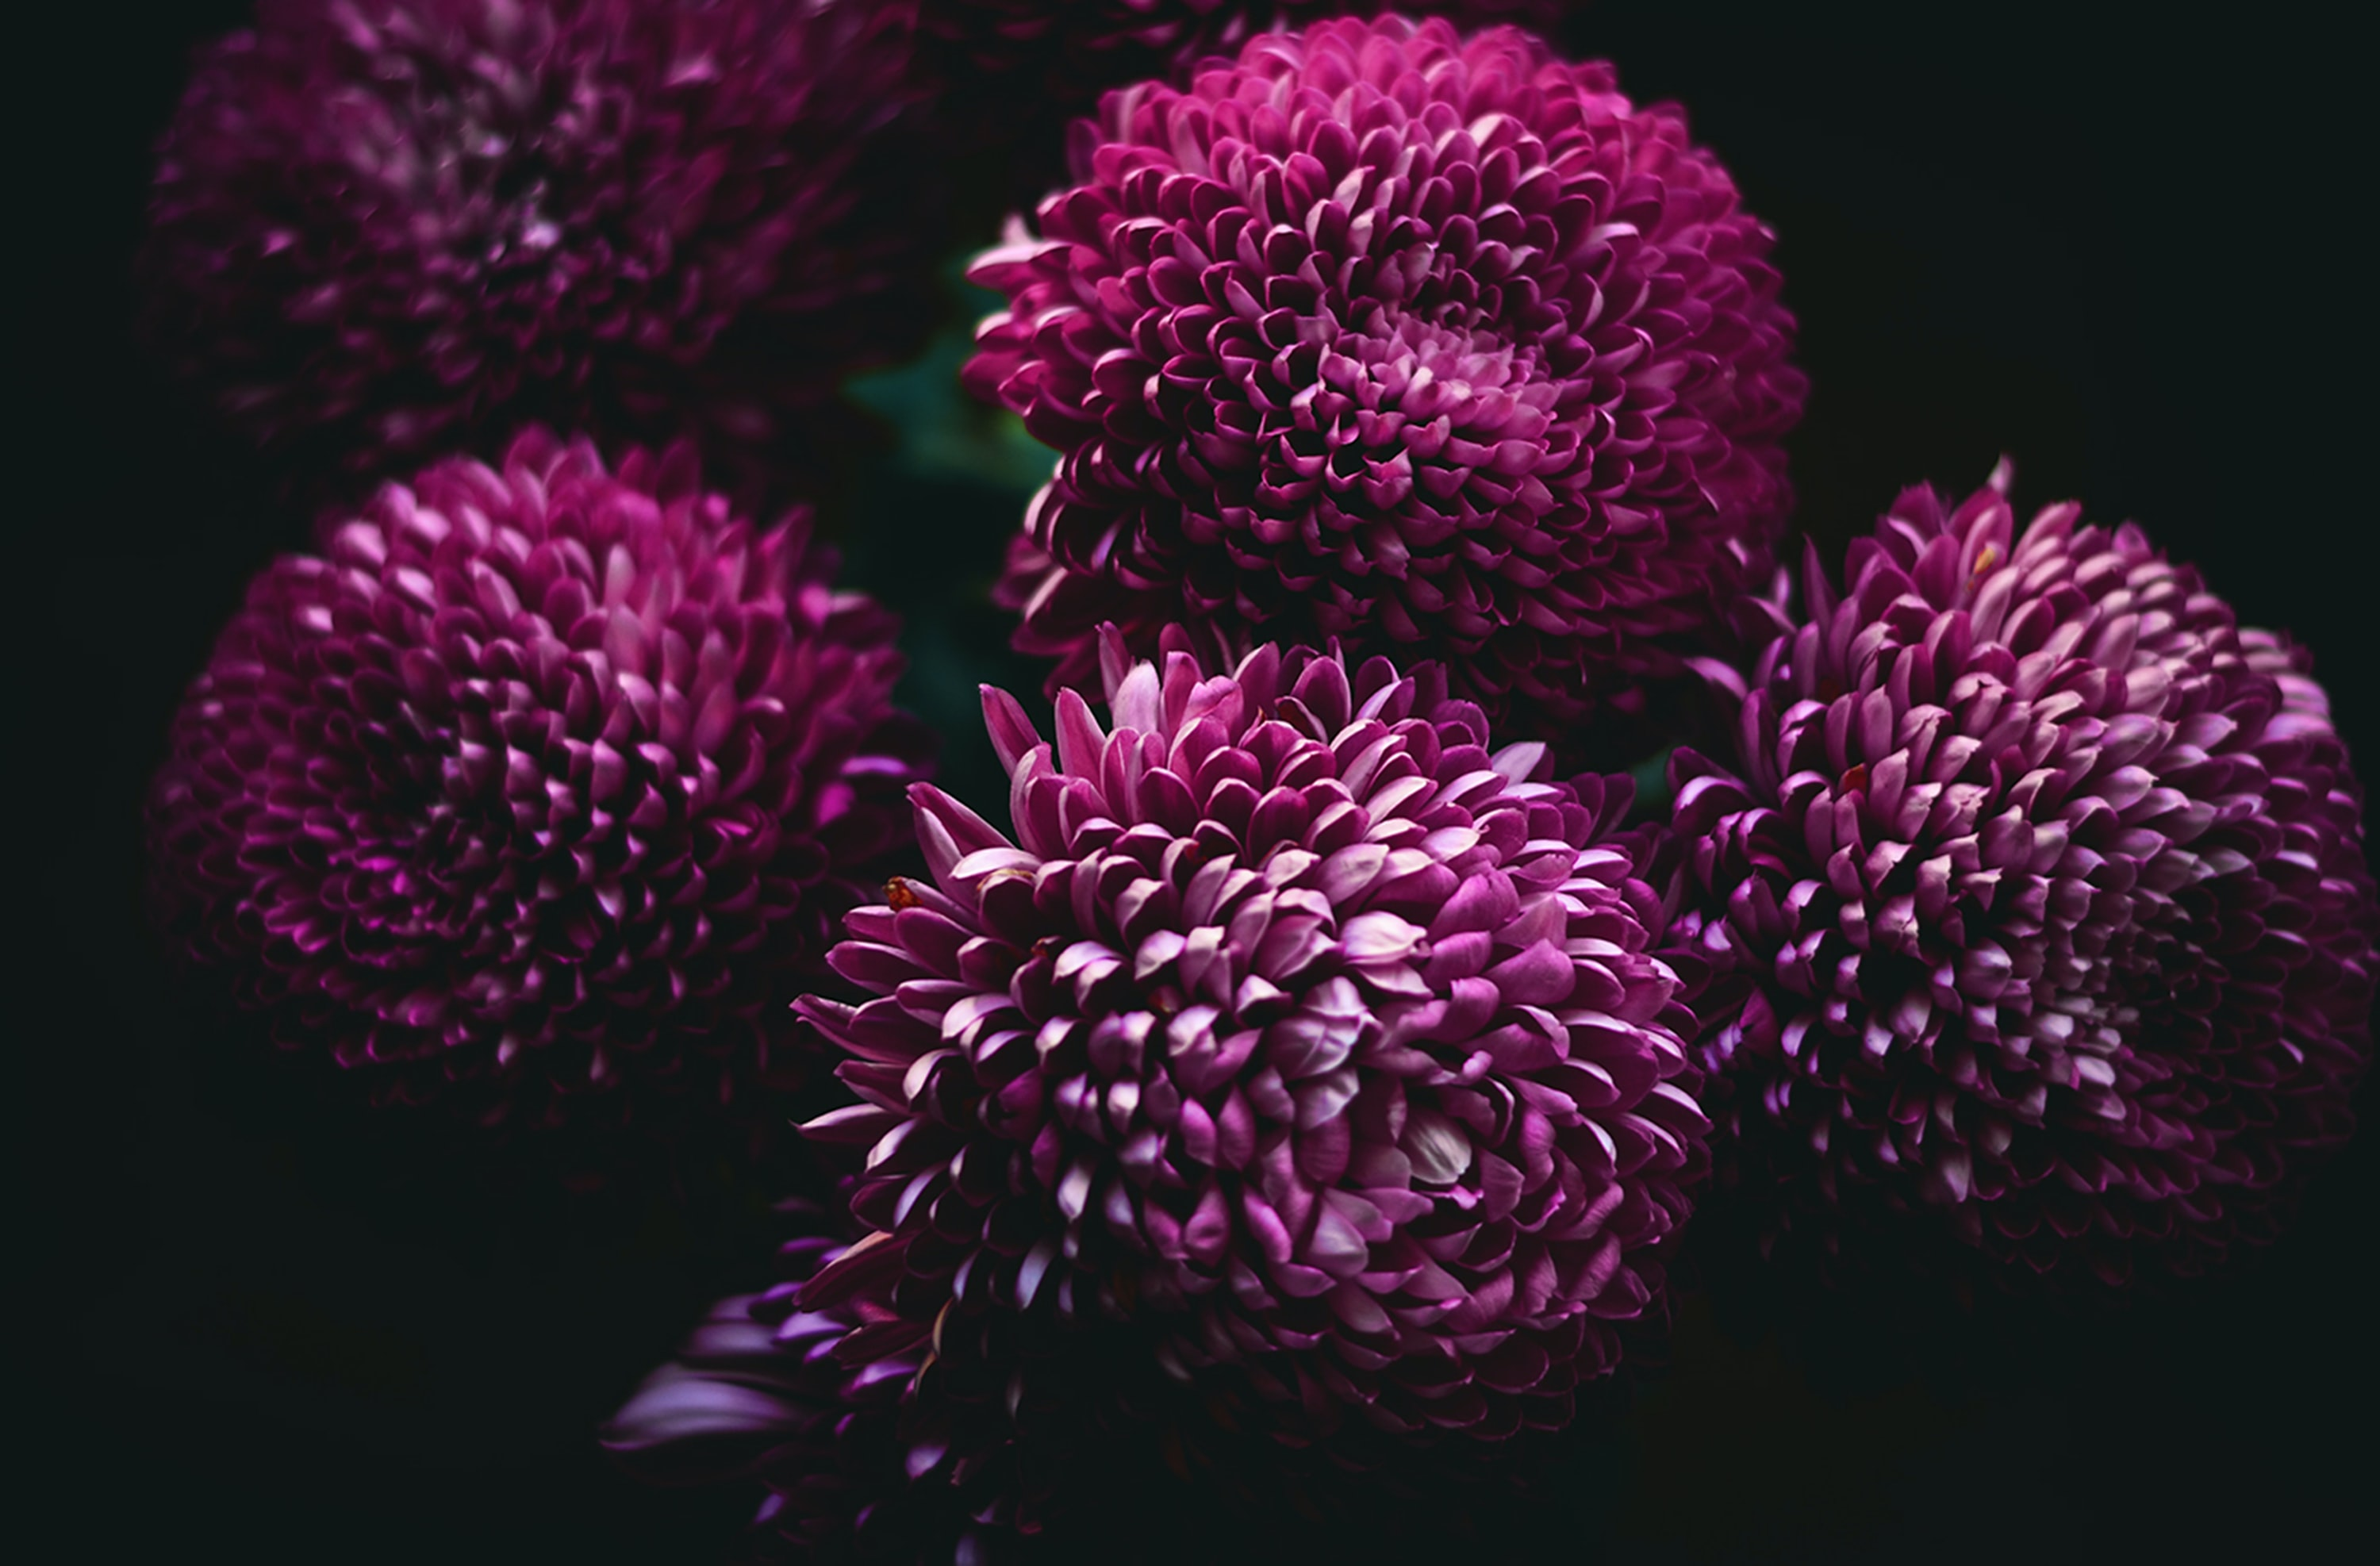 Purple chrysanthemum flowers in full bloom against a black background